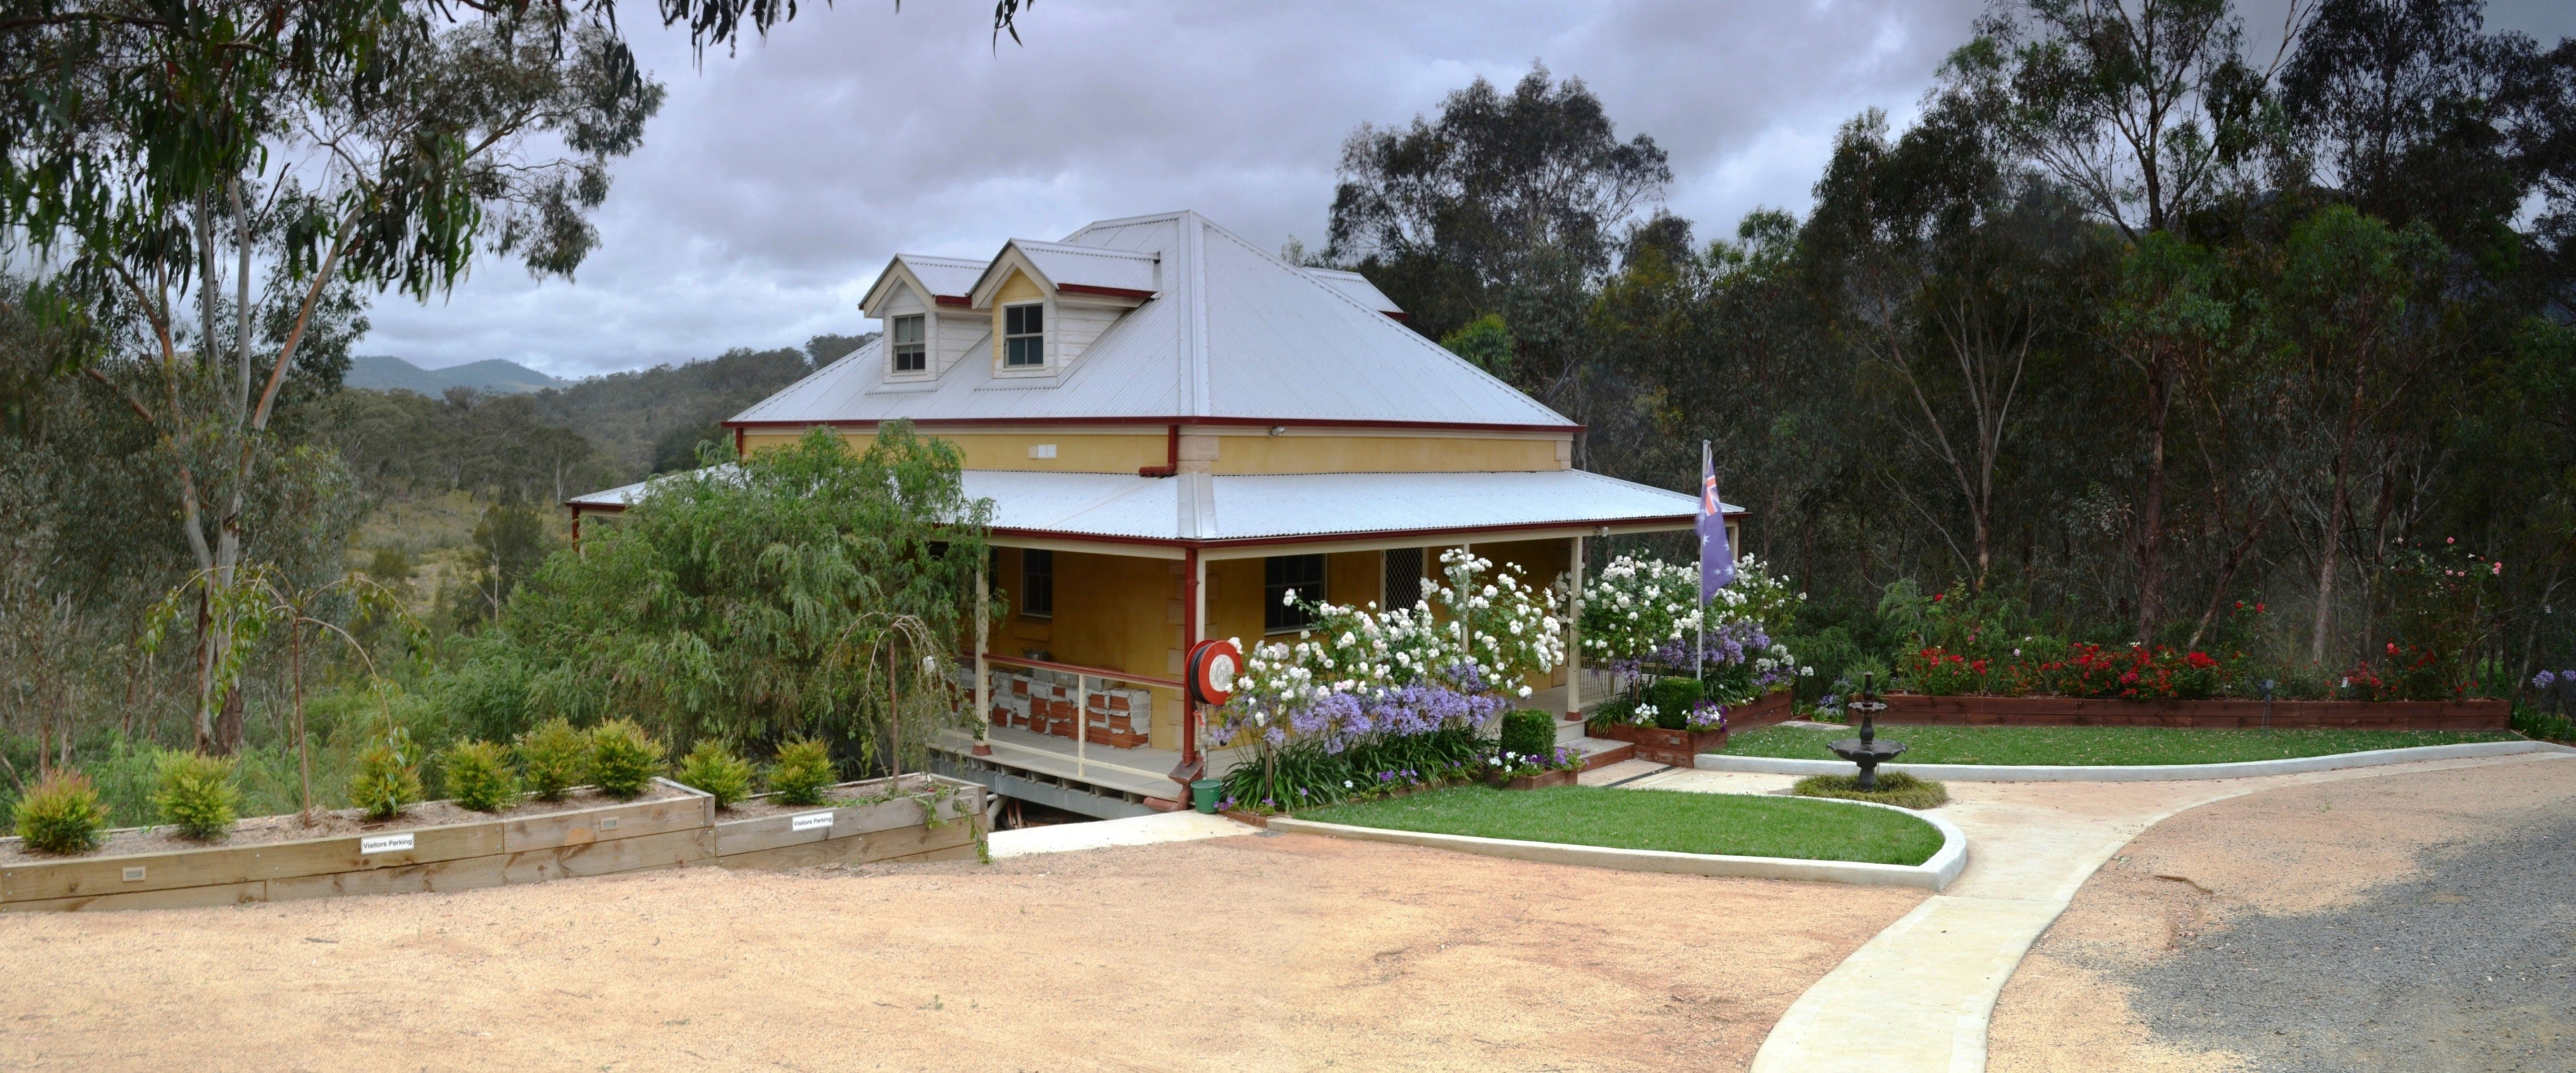 Tanwarra Lodge Bed and Breakfast - Lightning Ridge Tourism